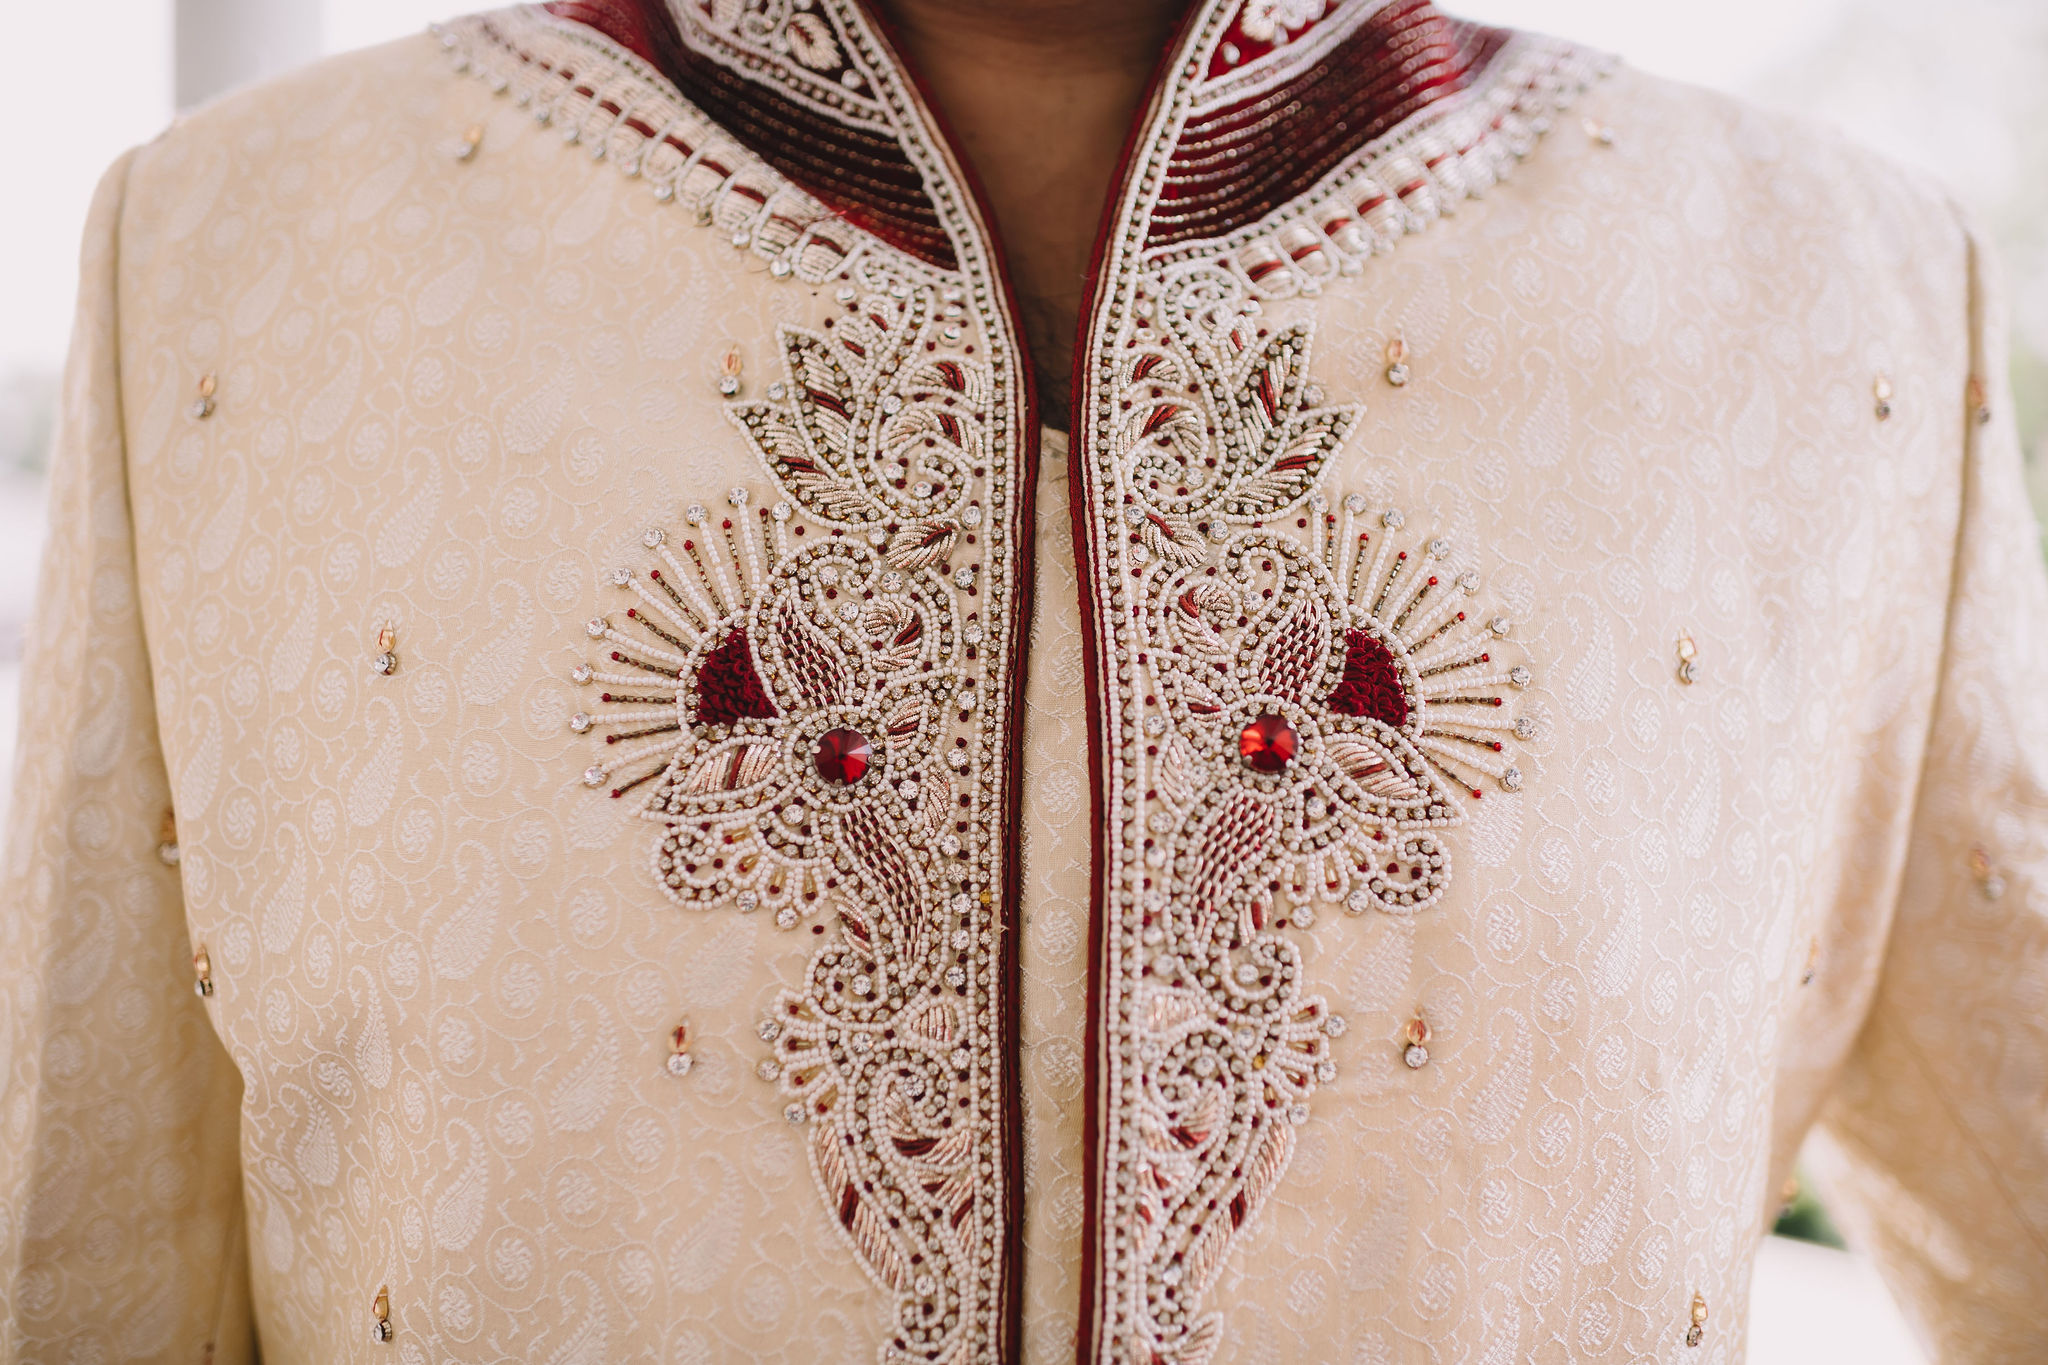 Jimmy wore a Sherwani with red embroidered detail.